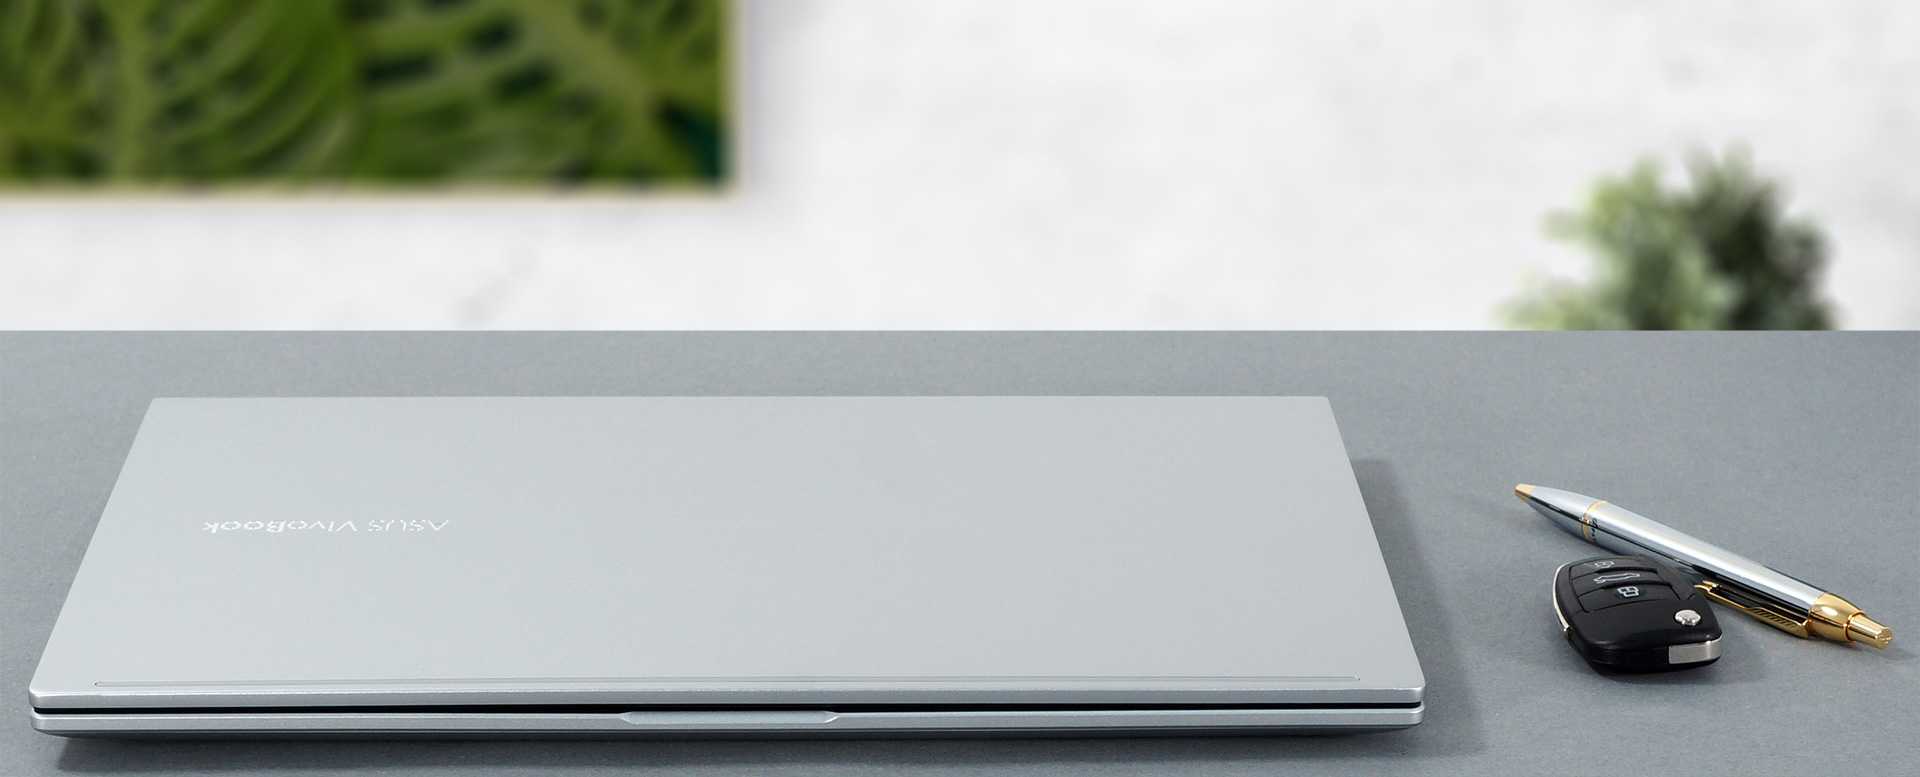 ASUS VivoBook 14 M413 review – excellent performance for the price -  Phoneweek